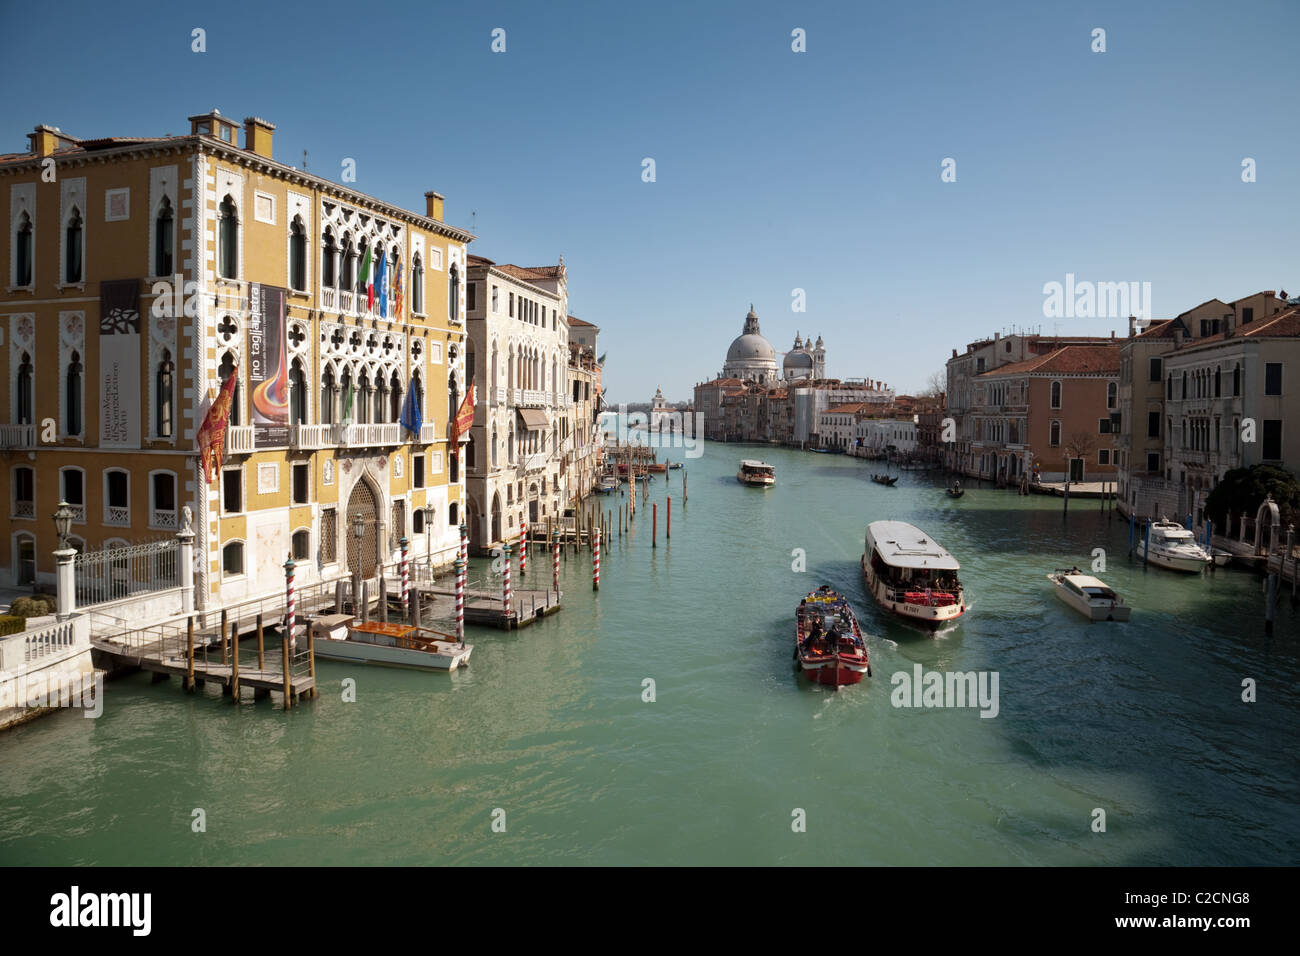 The Grand Canal at Accademia, Venice Italy in Spring - Stock Image